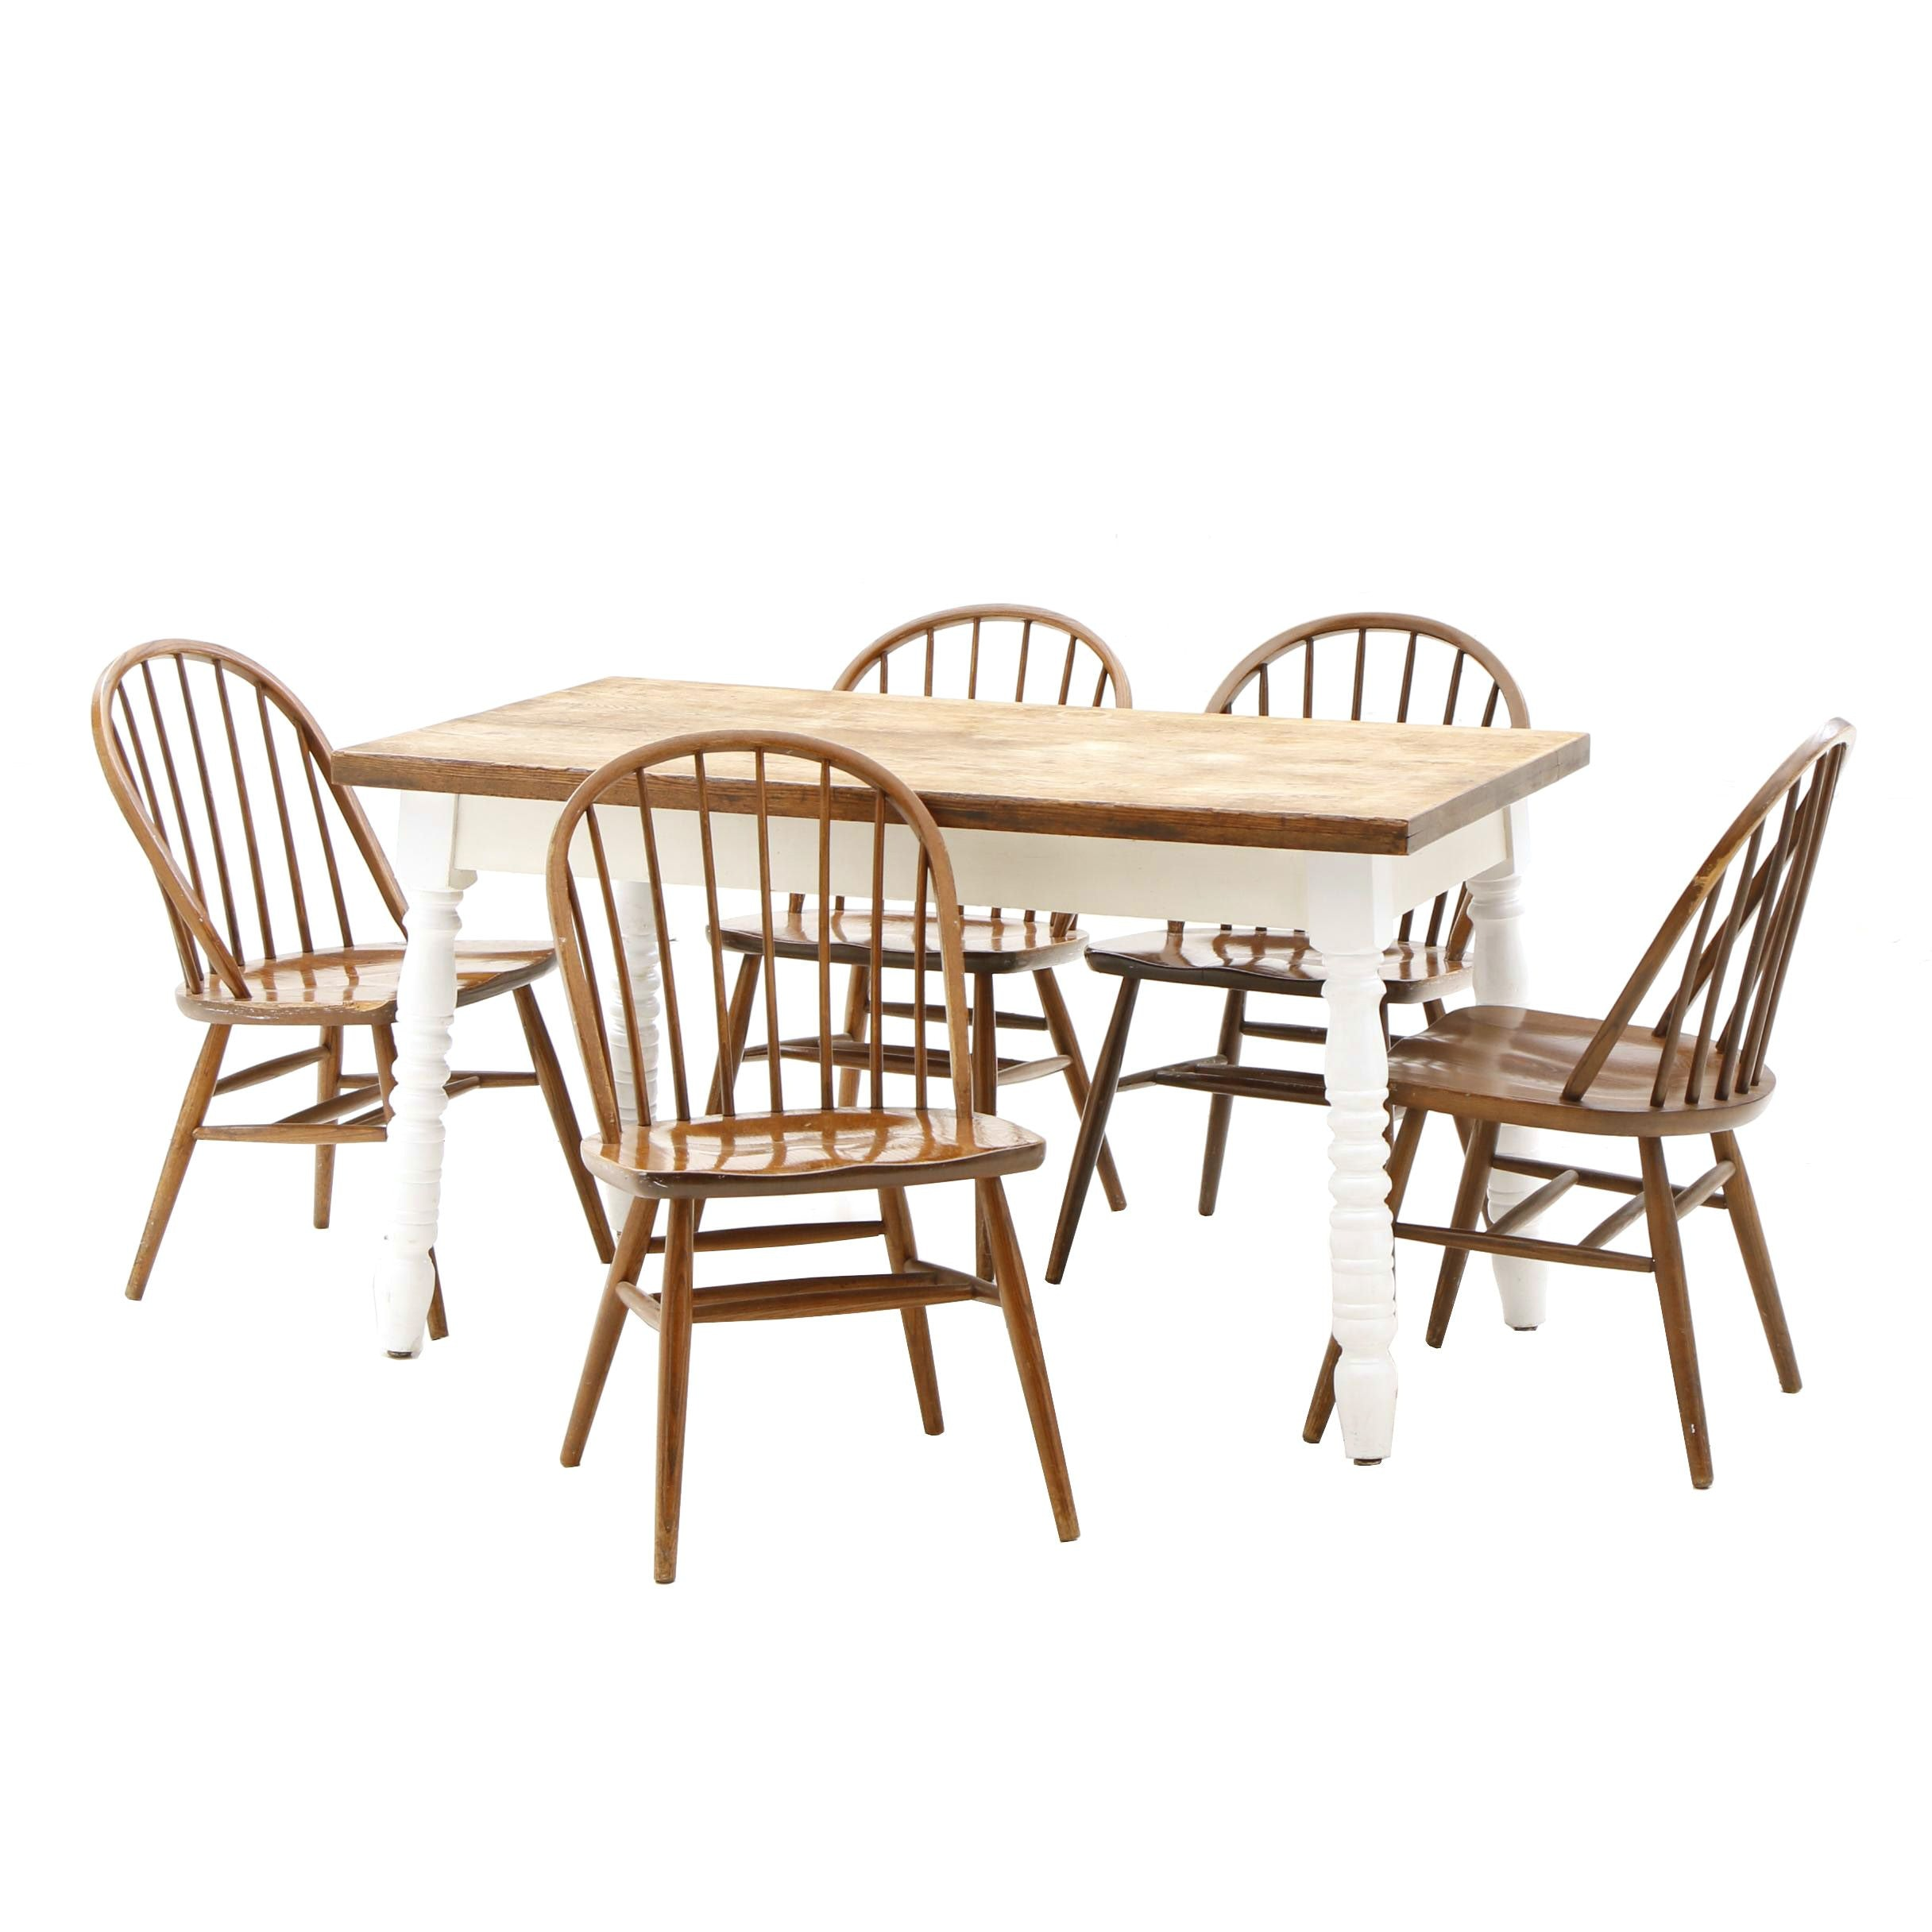 Rustic Themed Dining Set